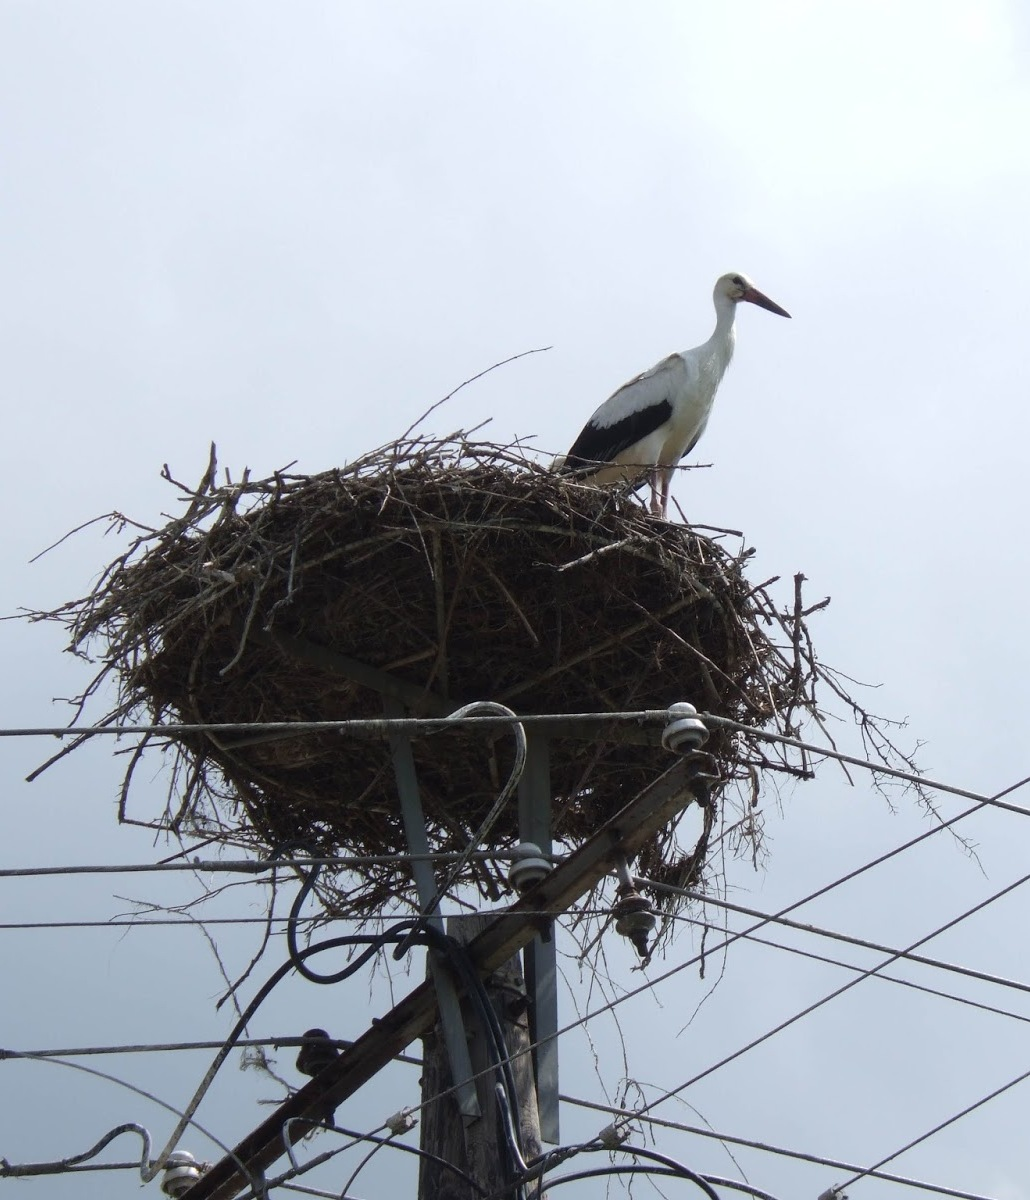 A stork bird with it's nest on electrical wires.